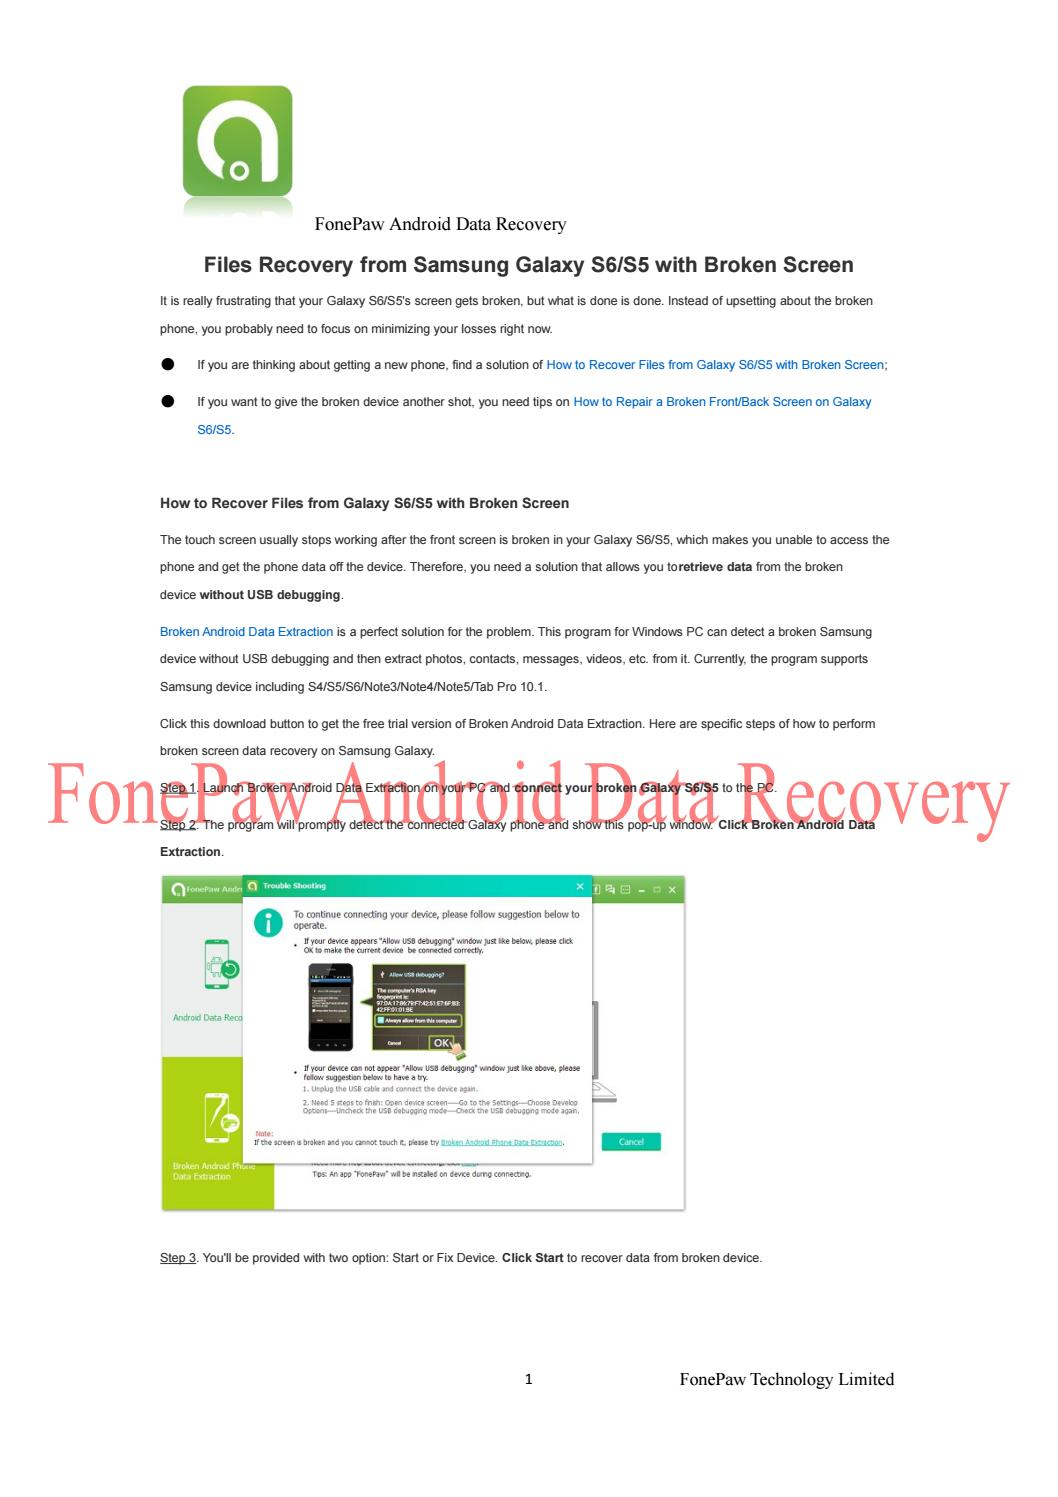 Ander Page Videos files recovery from samsung galaxy s6billssee - issuu